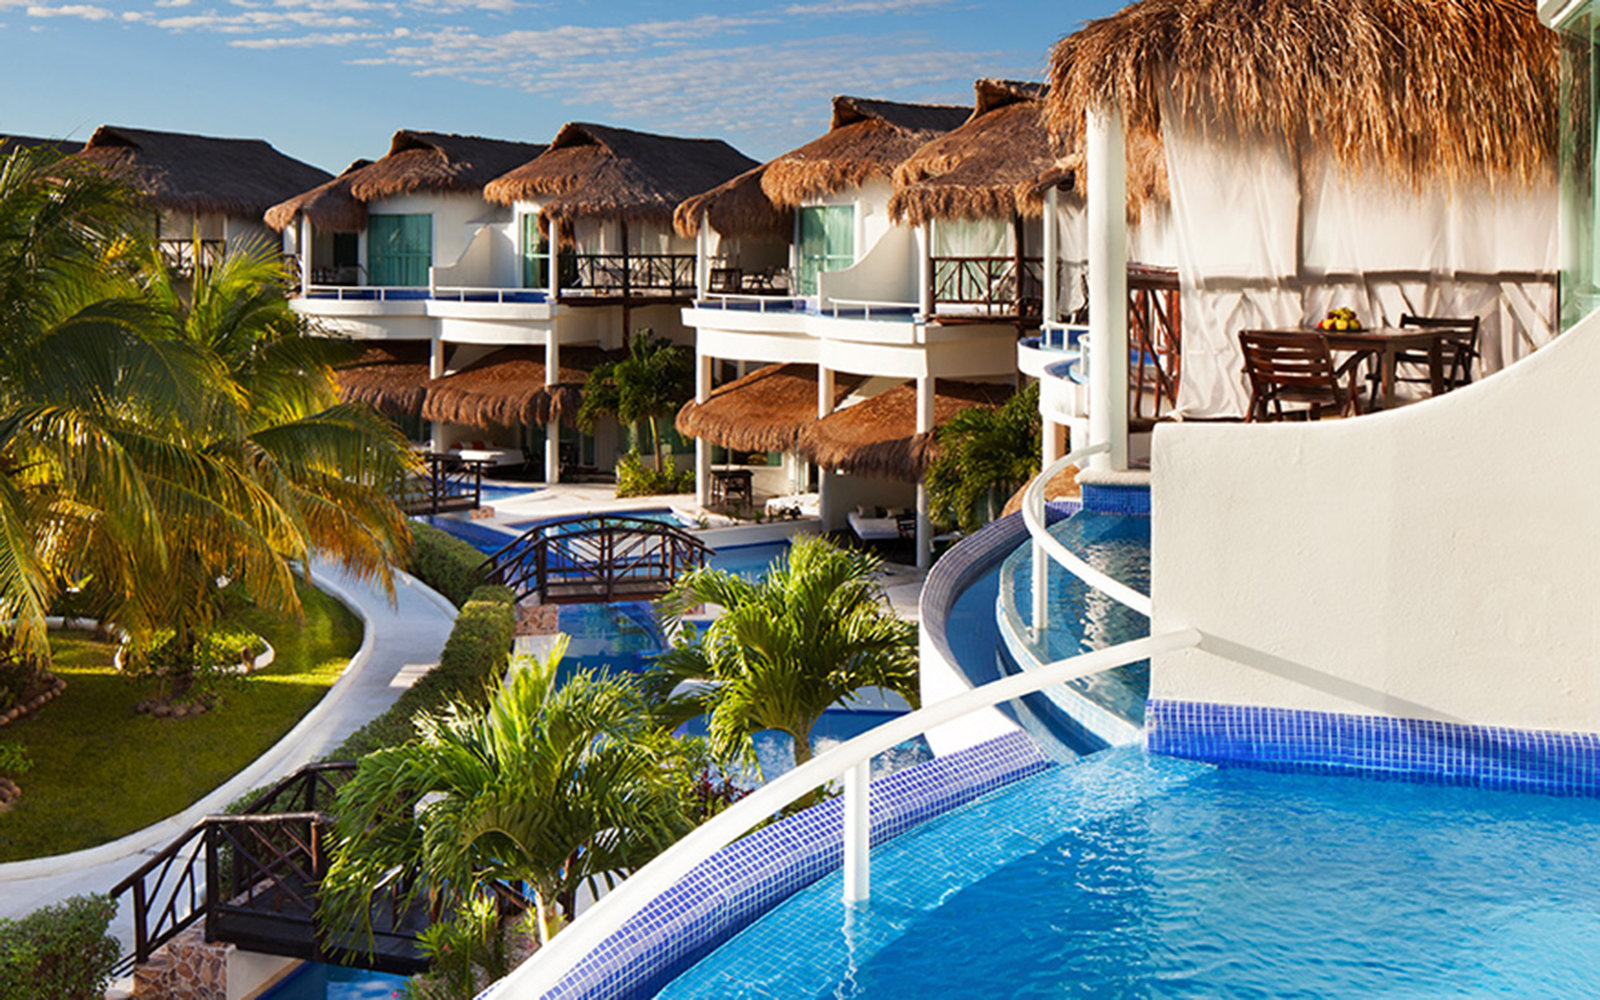 All Inclusive Resort Best Caribbean All Inclusive Resorts Travel Leisure